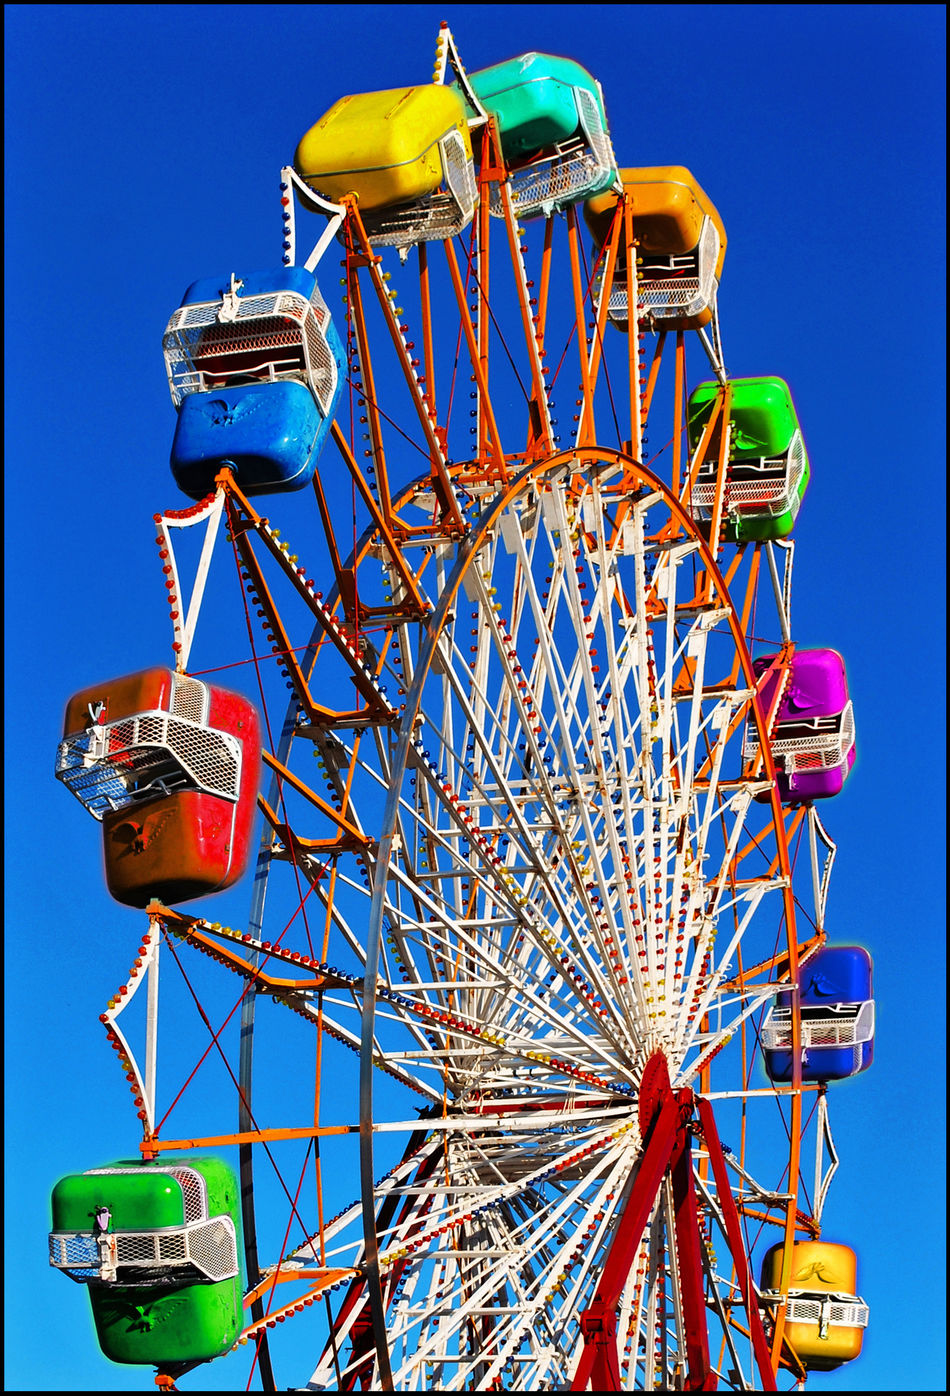 Amusement Park Blu Sky By The Sea Cabins  Colorful Colours Day Ferris Wheel Freedom Greece Leisure Activity Merry-go-round No People Outdoors Summer